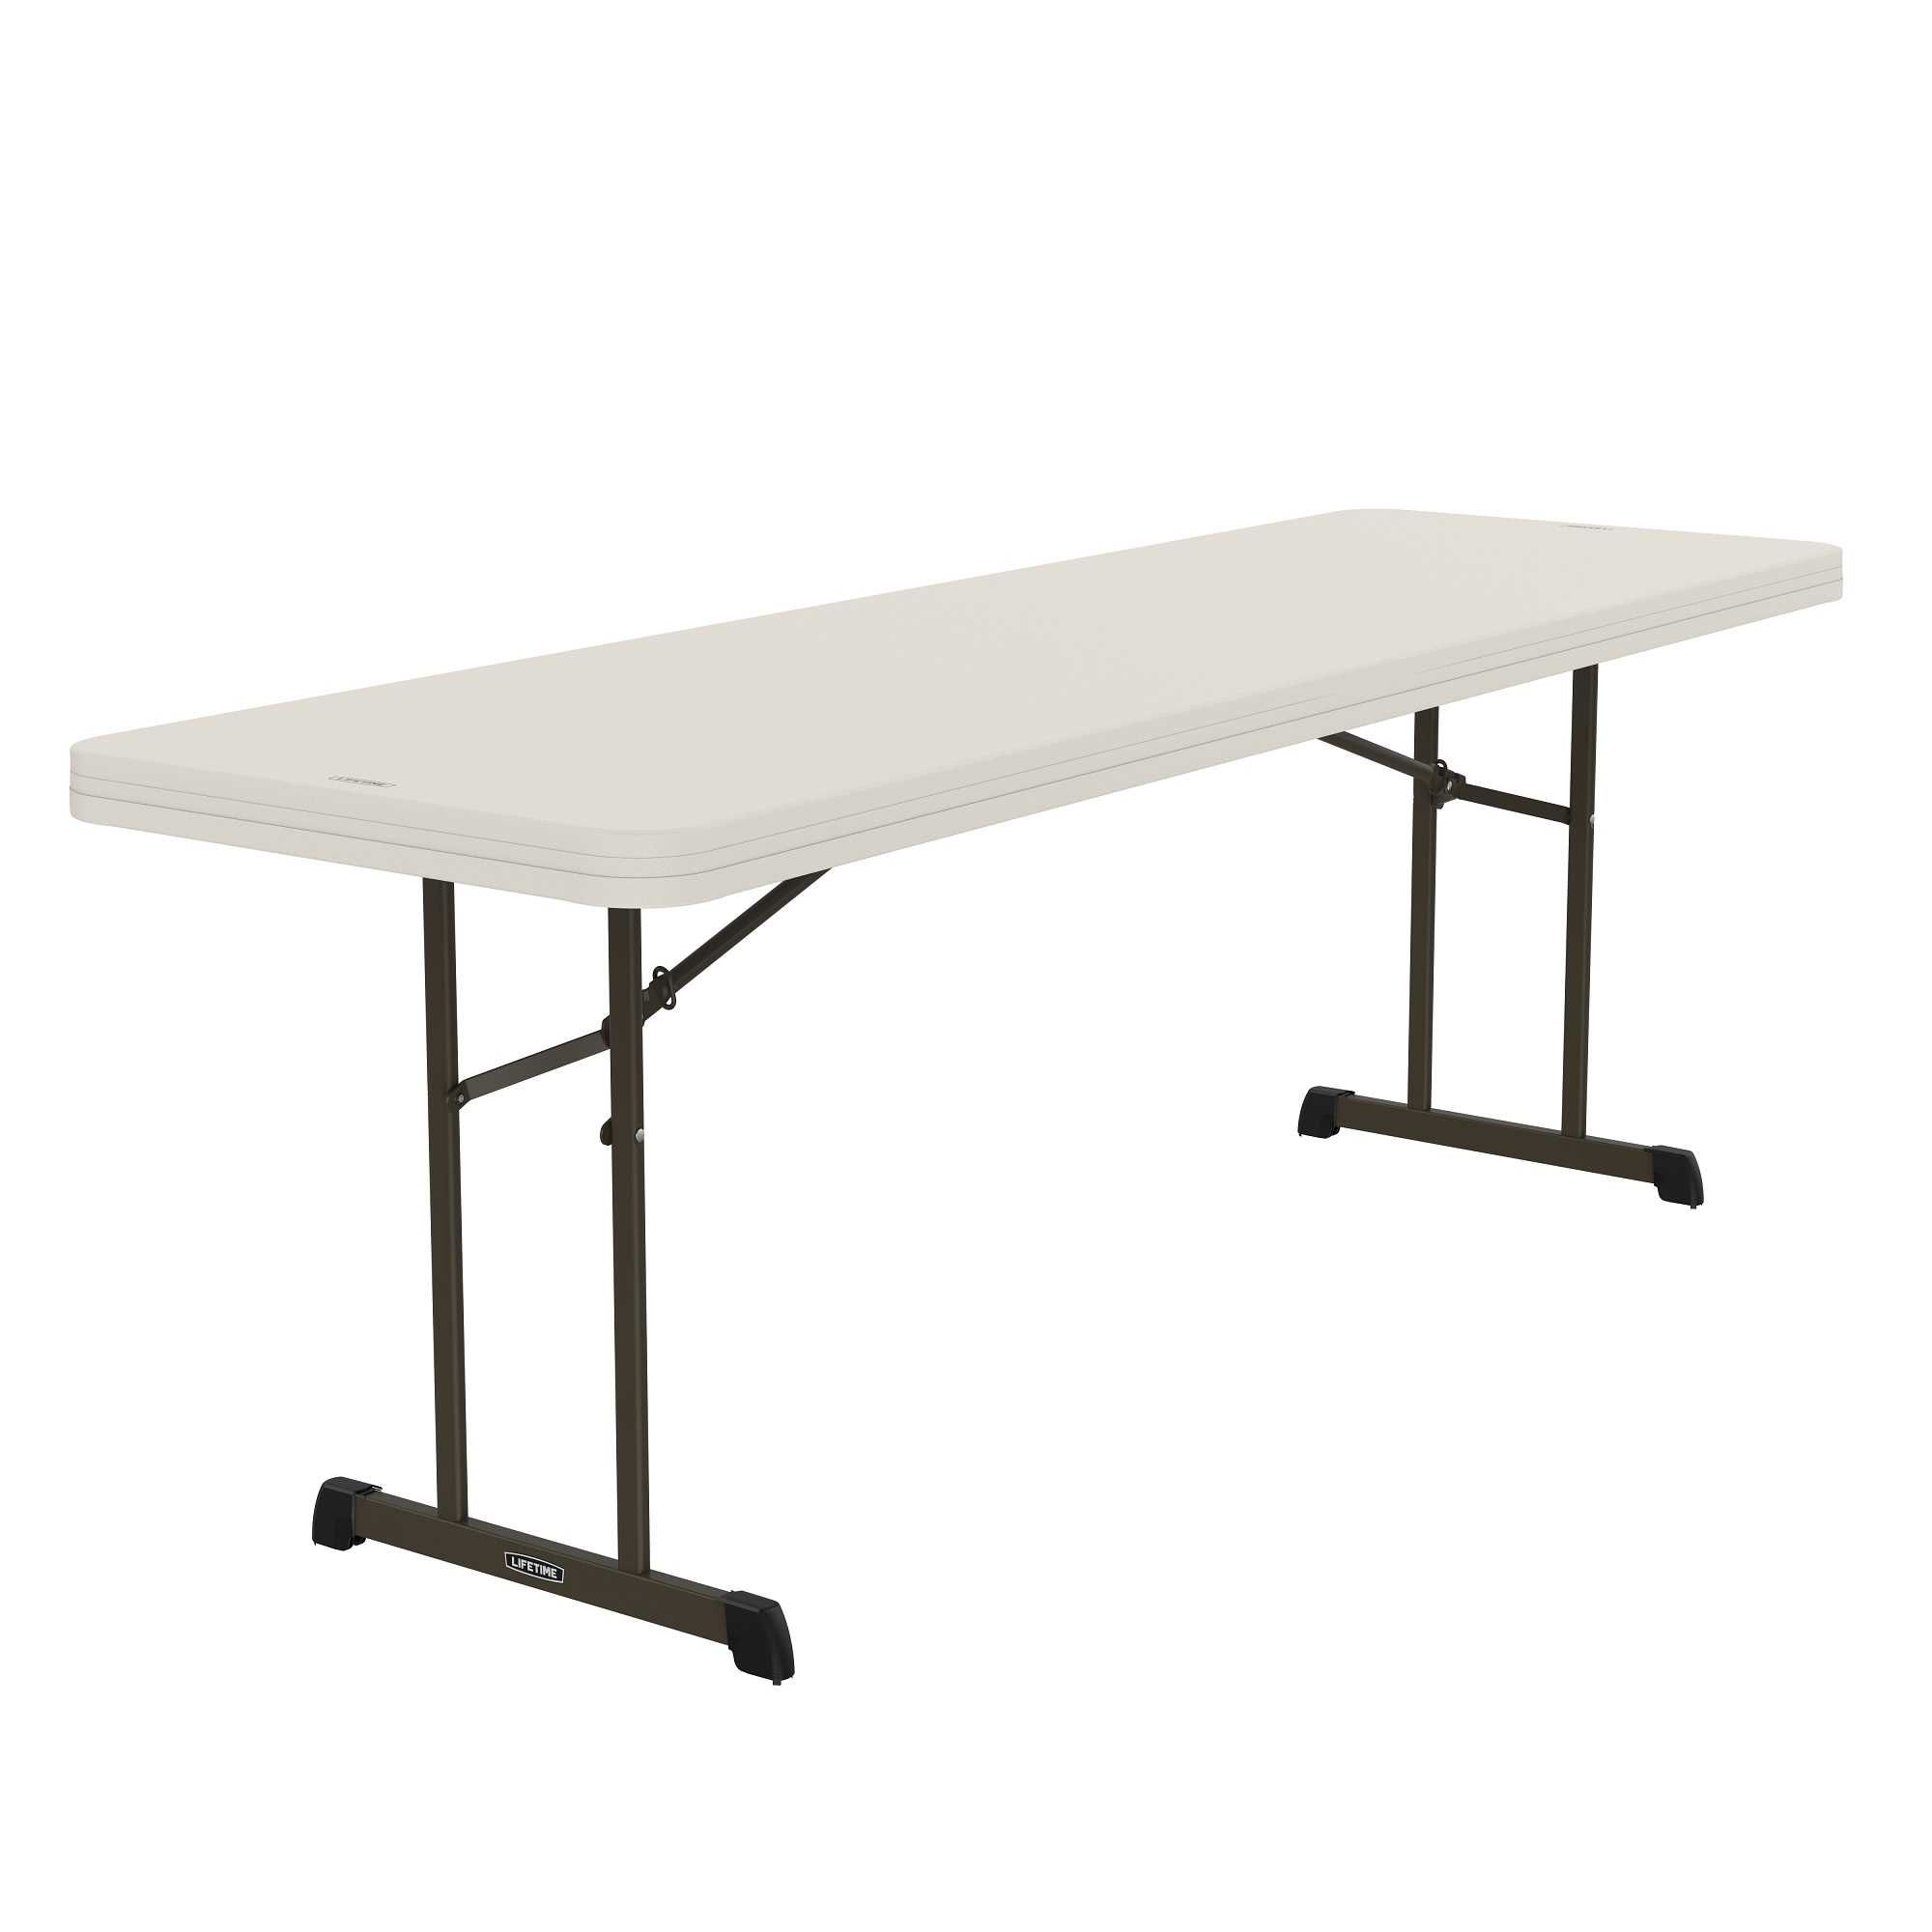 Lifetime 8-Foot Folding Table (Professional)